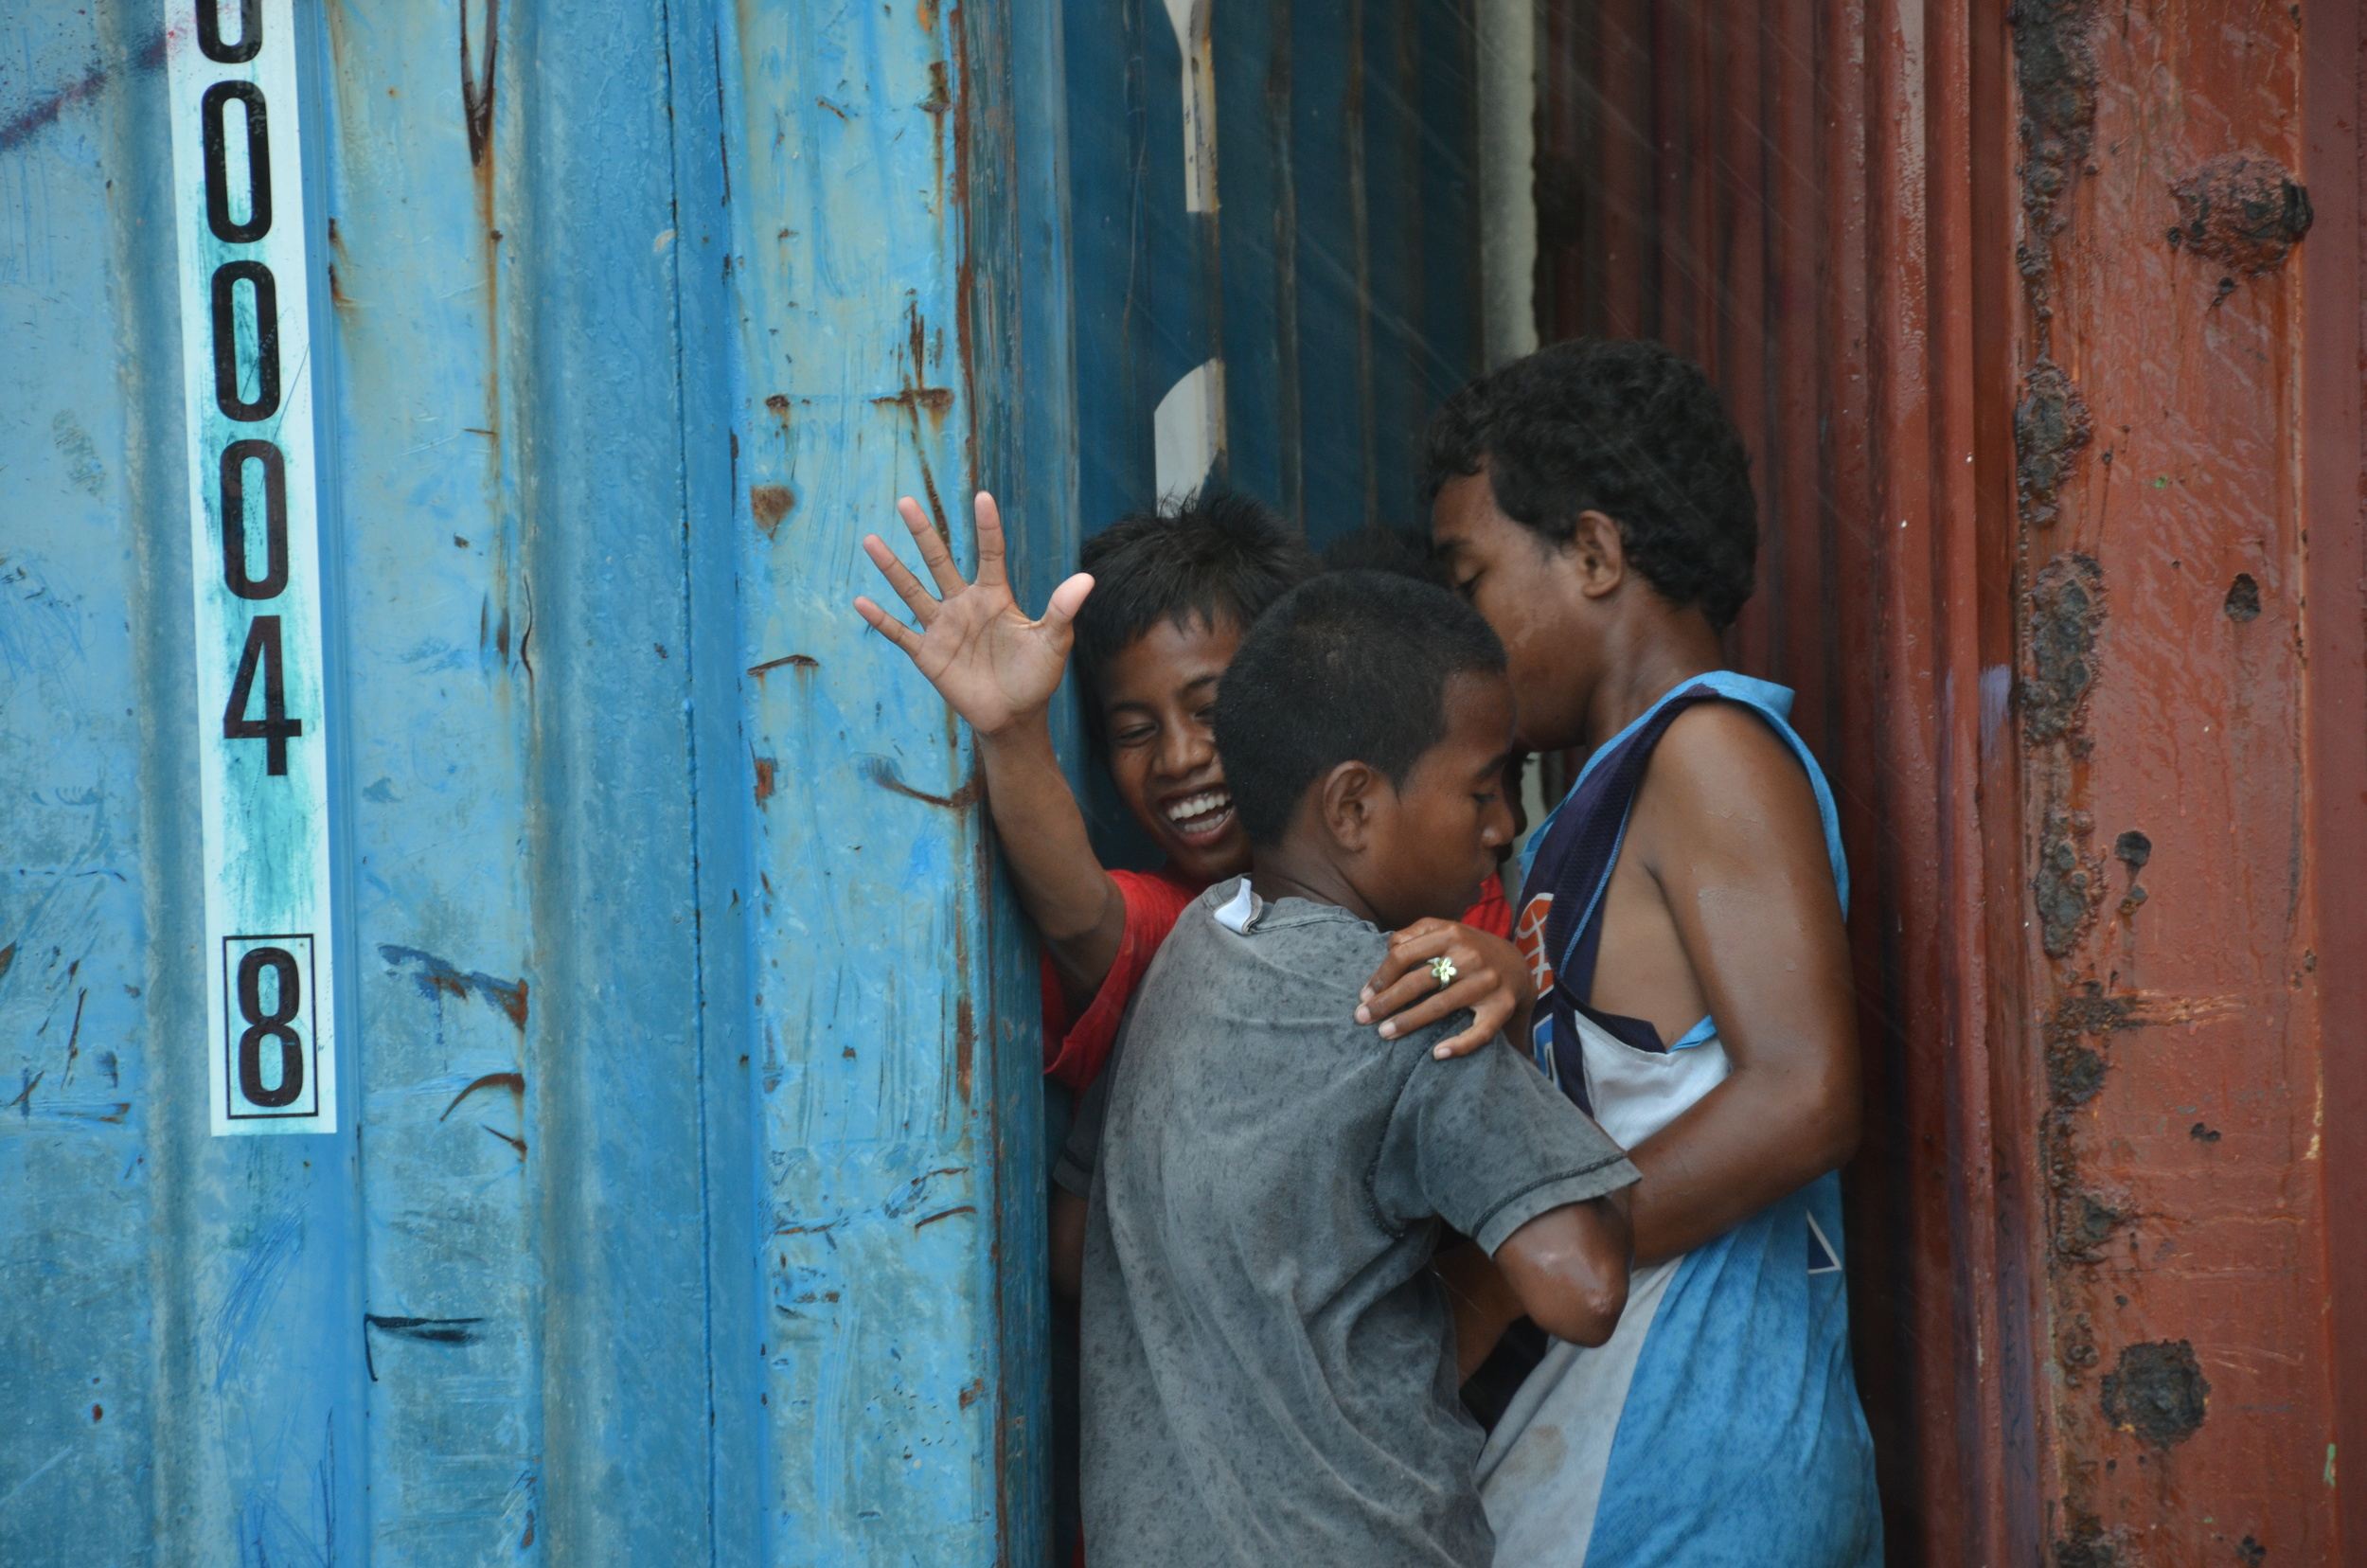 During a sudden rainstorm, children seek shelter between shipping containers.